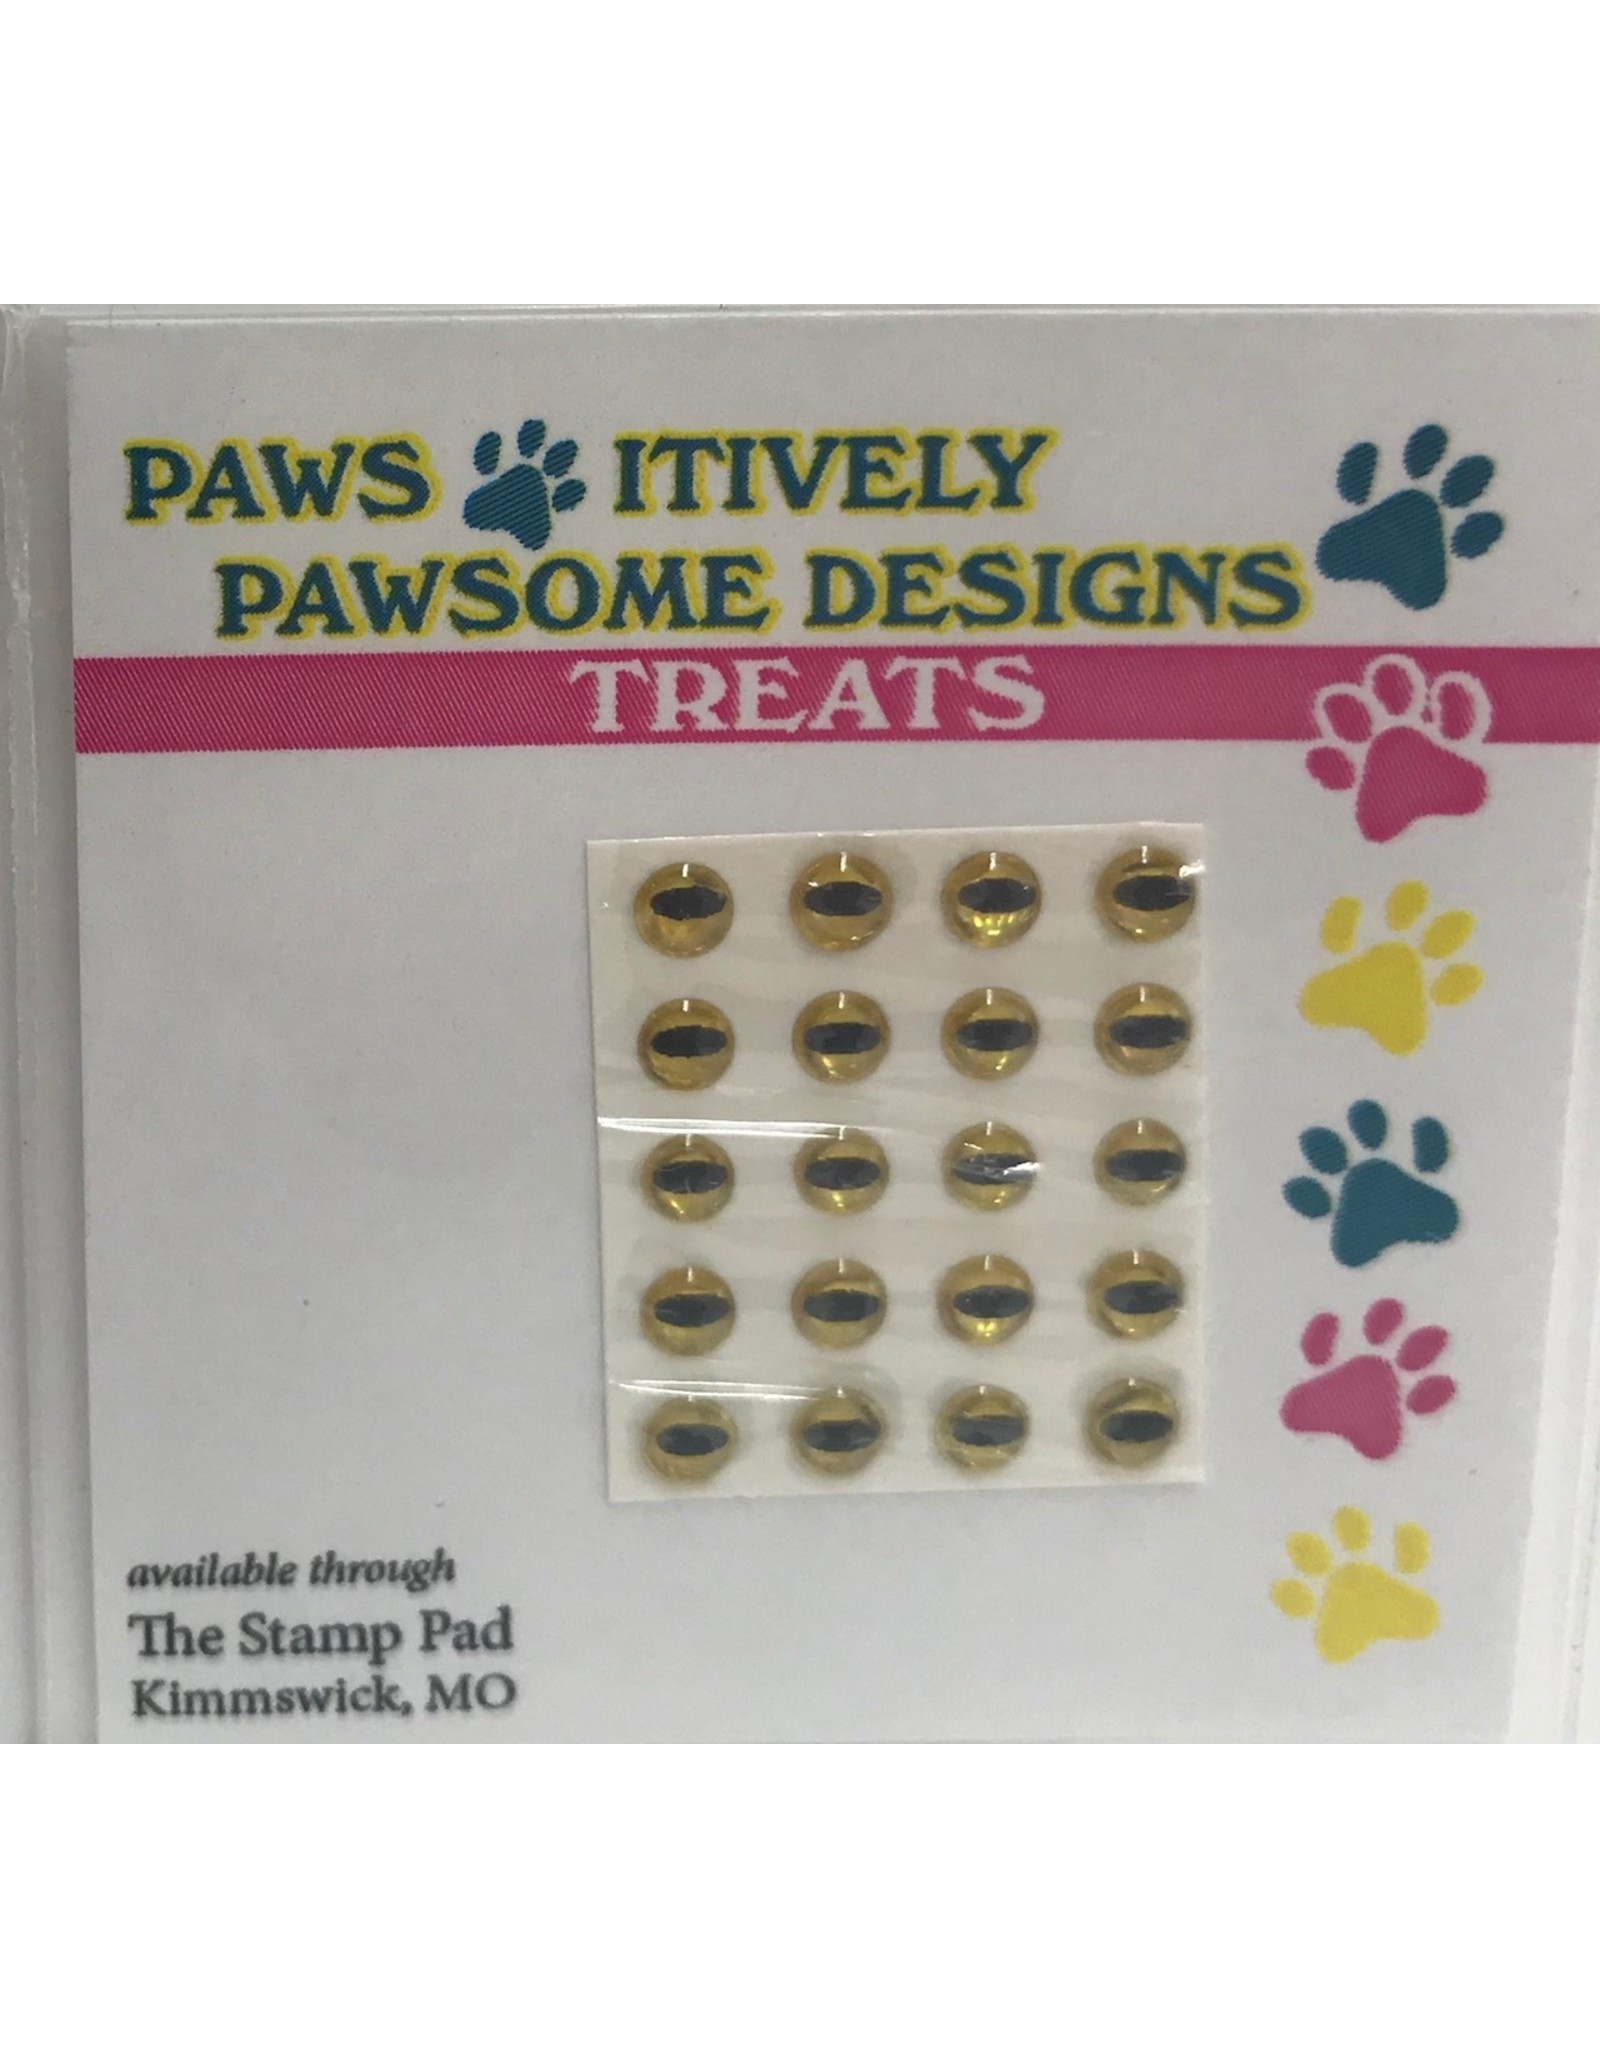 Paws-Itively Pawsome Designs Tiny Eyes (Cat/Frog or Reptile) - Gold 3mm (Qty 20)